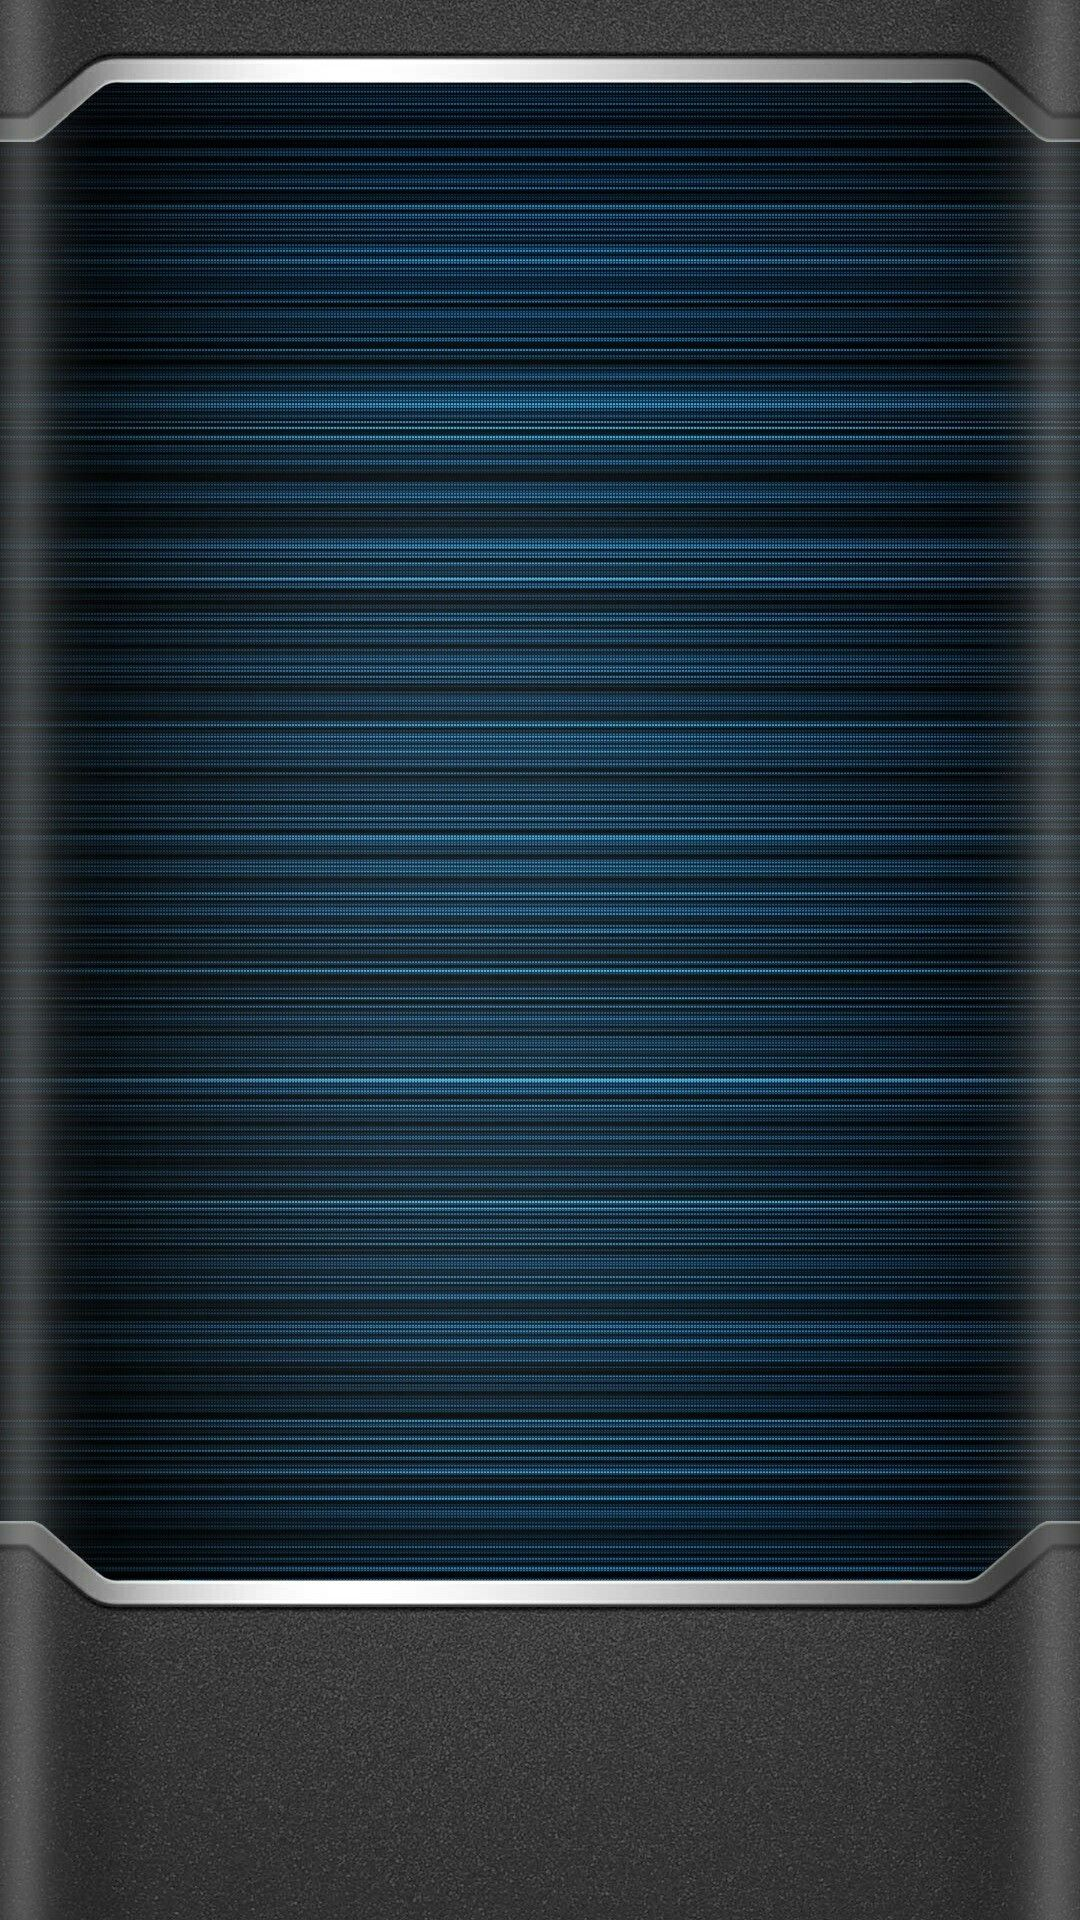 Black Blue and Grey Stripes Wallpaper